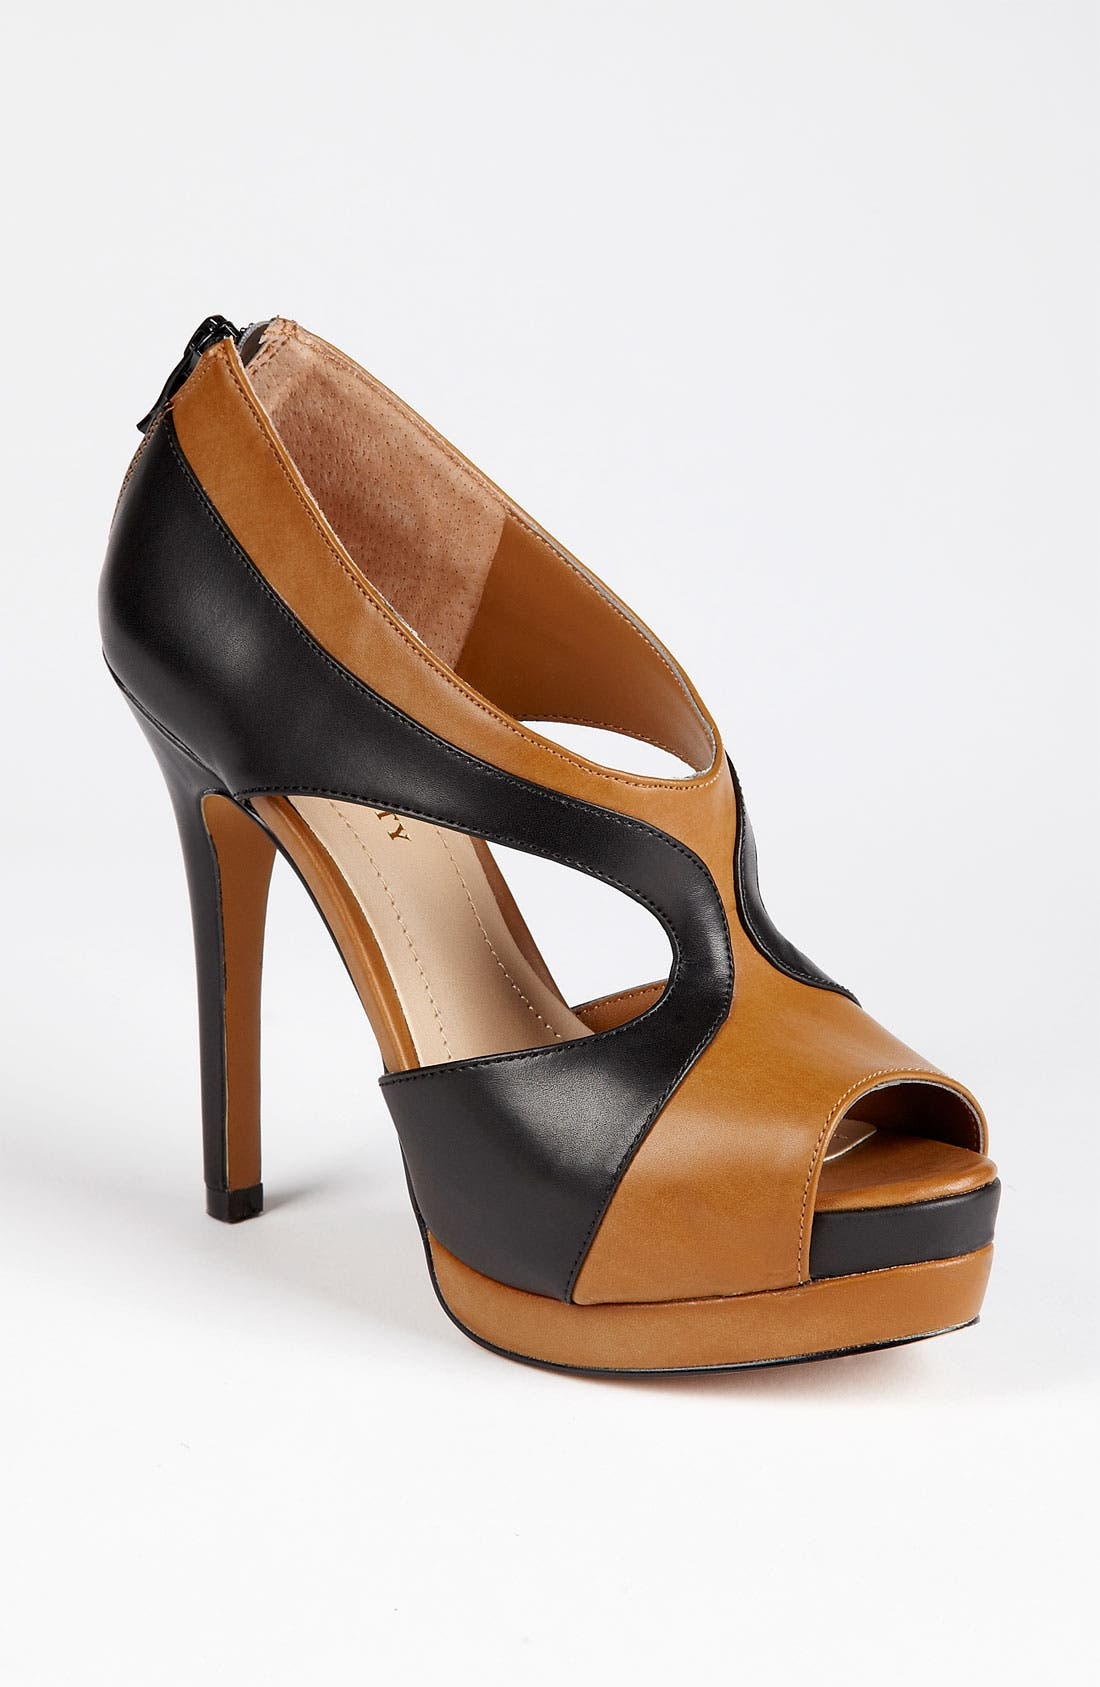 Alternate Image 1 Selected - Sole Society 'Neve' Platform Sandal